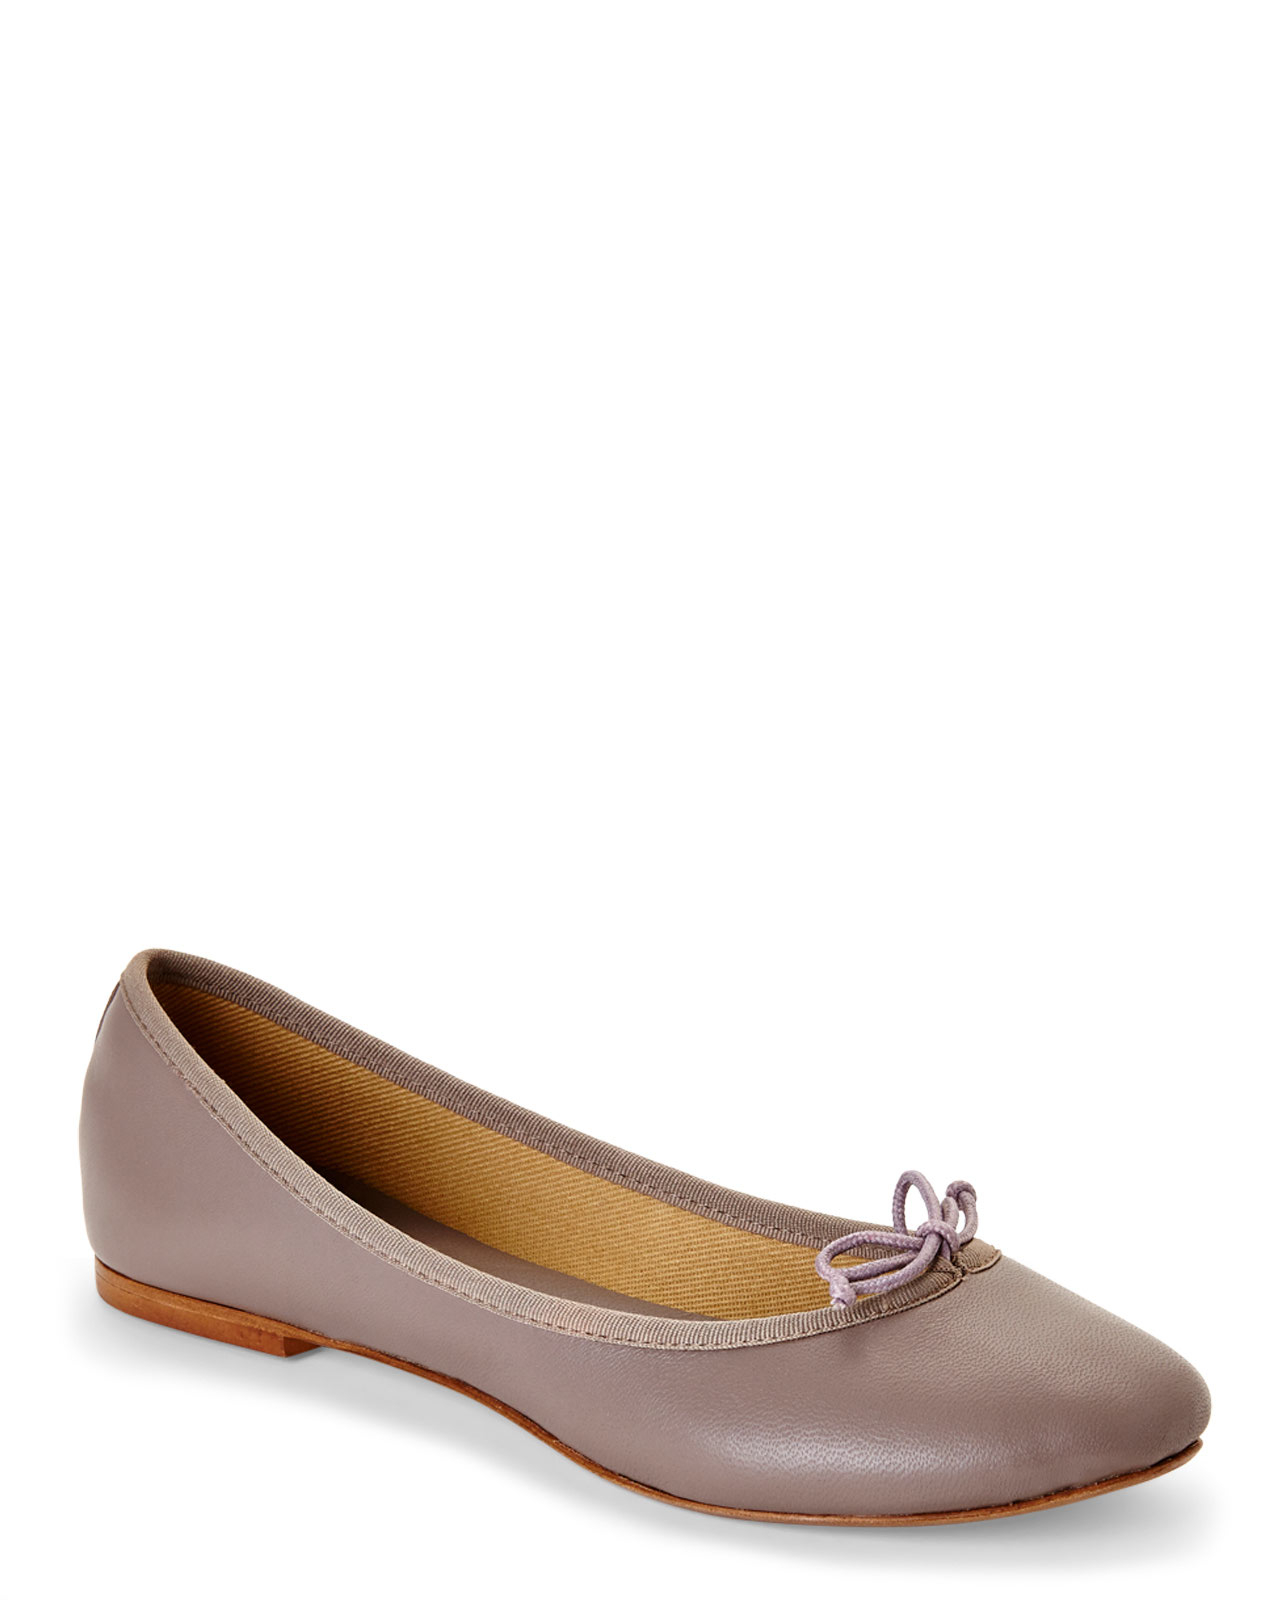 7e69192bc357 Lyst - L Autre Chose Grey   Taupe Ballet Flats in Gray